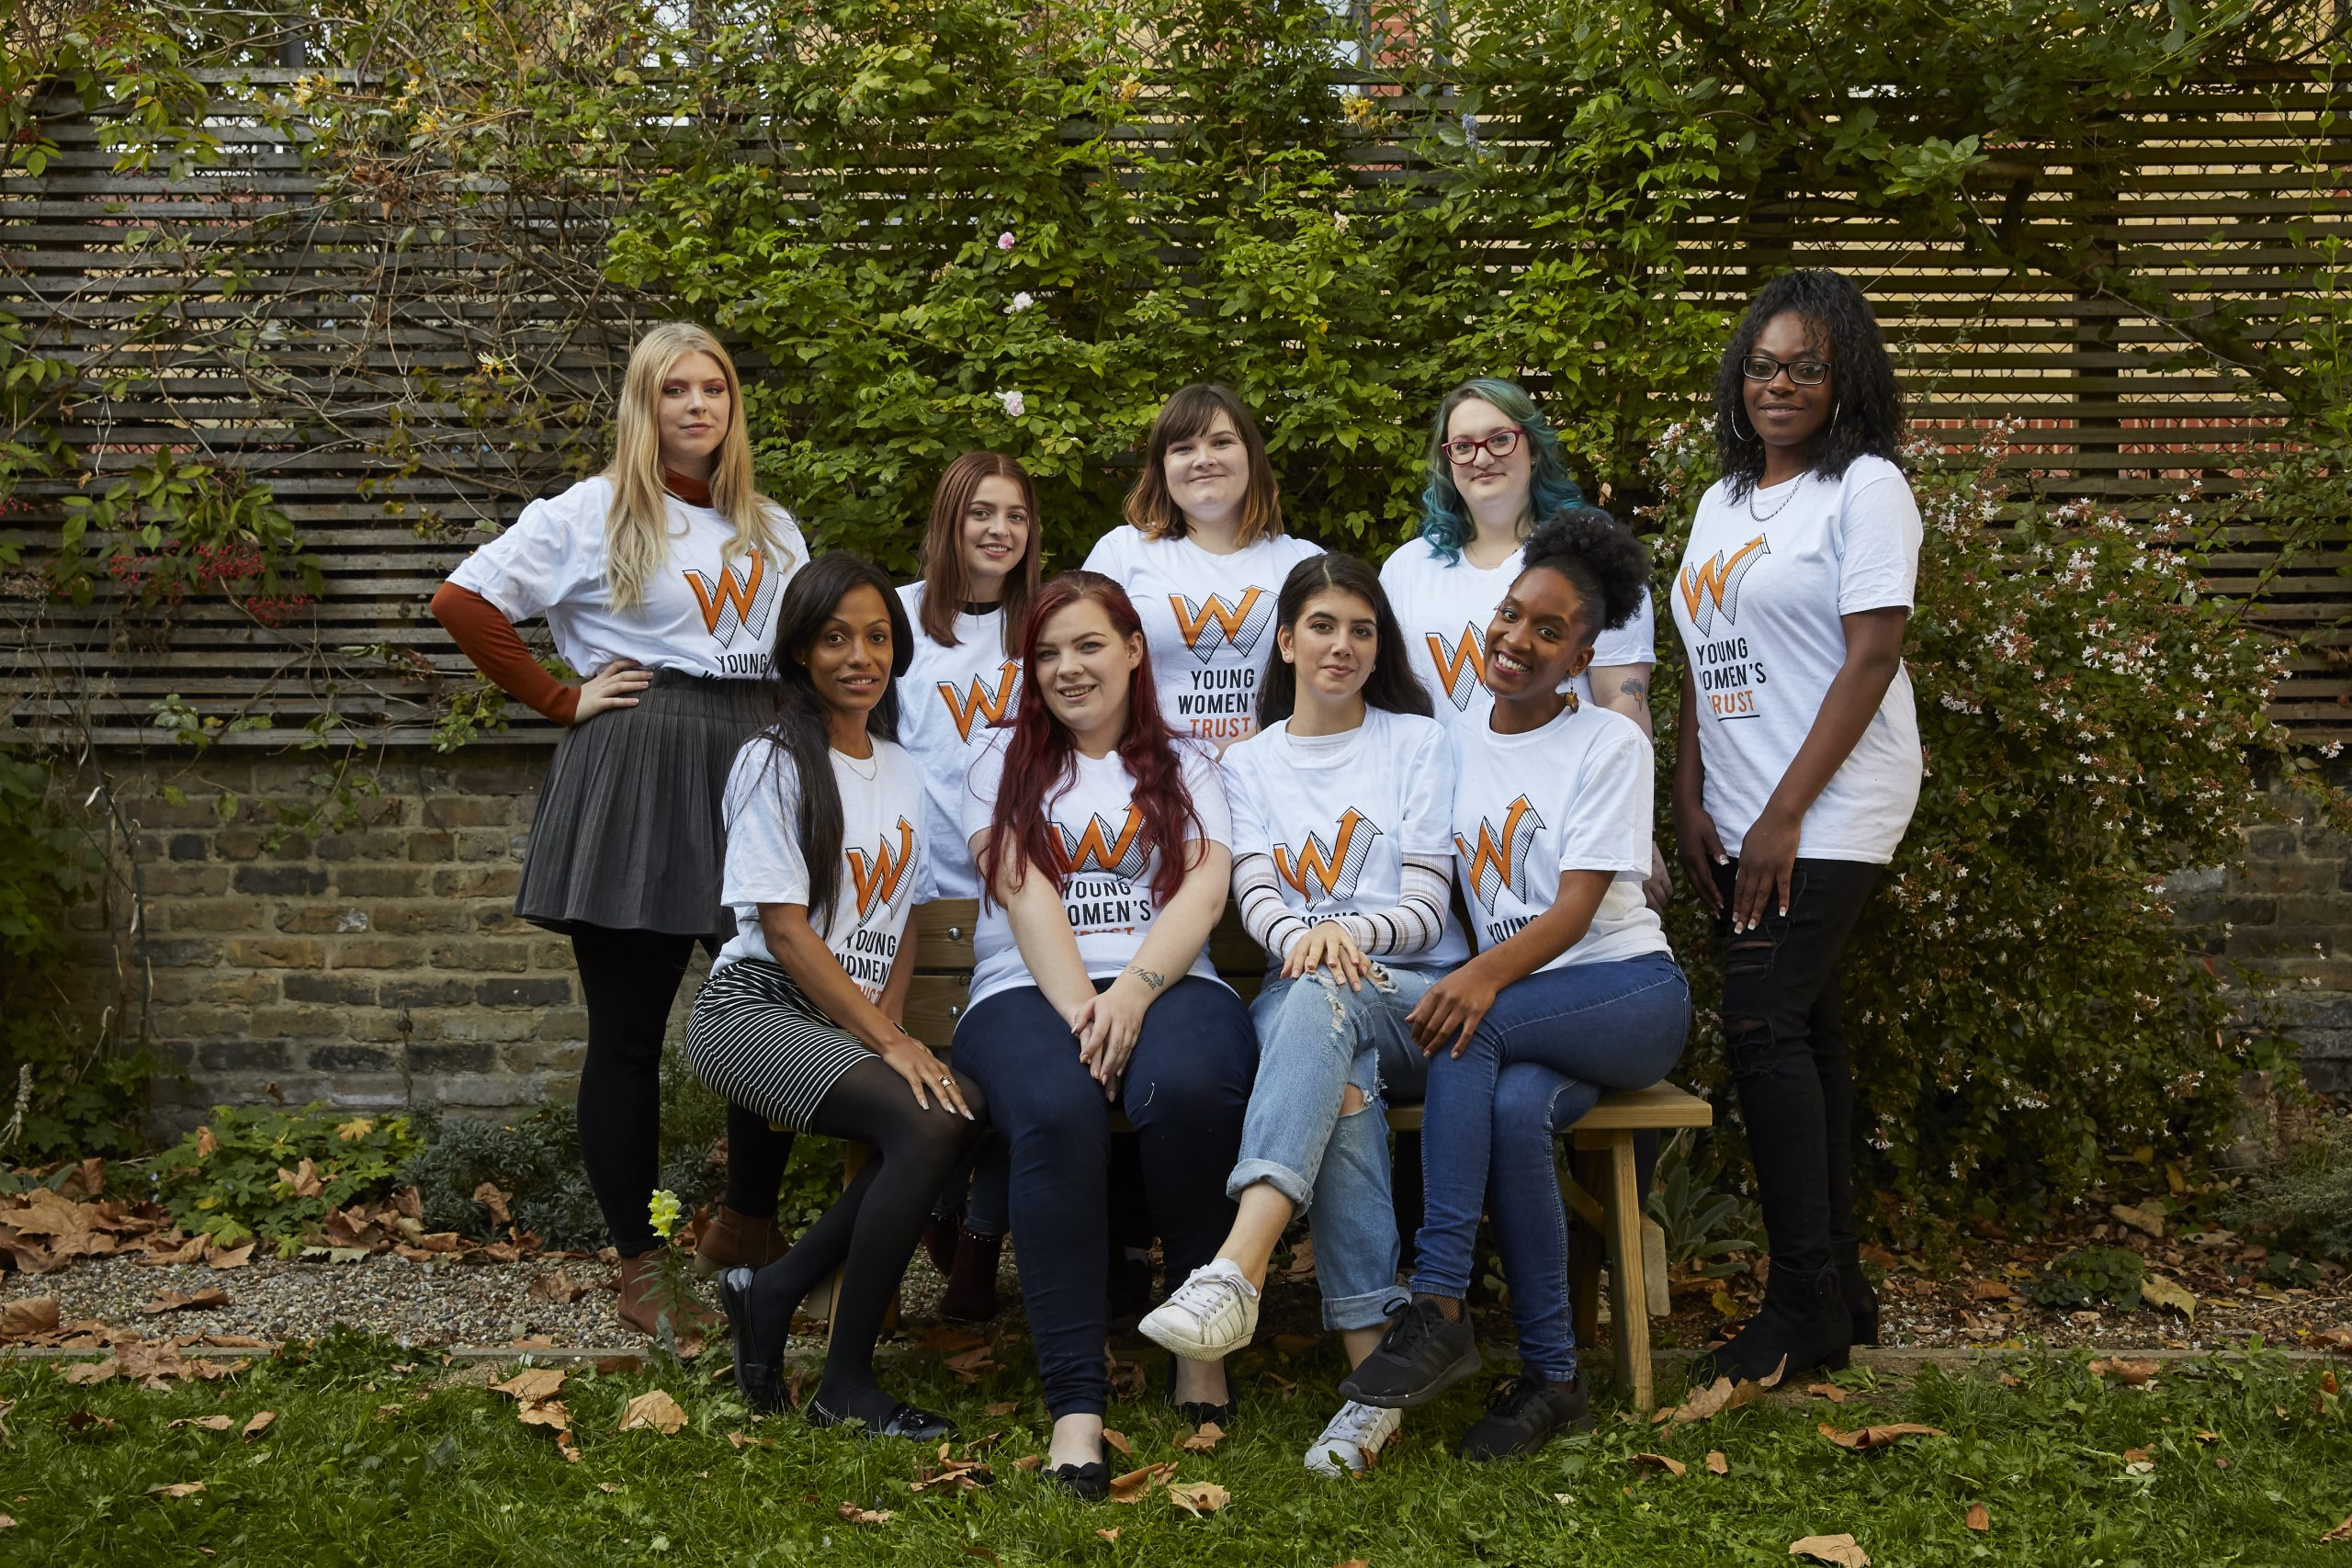 A group of women wearing Young Womens Trust t-shirts